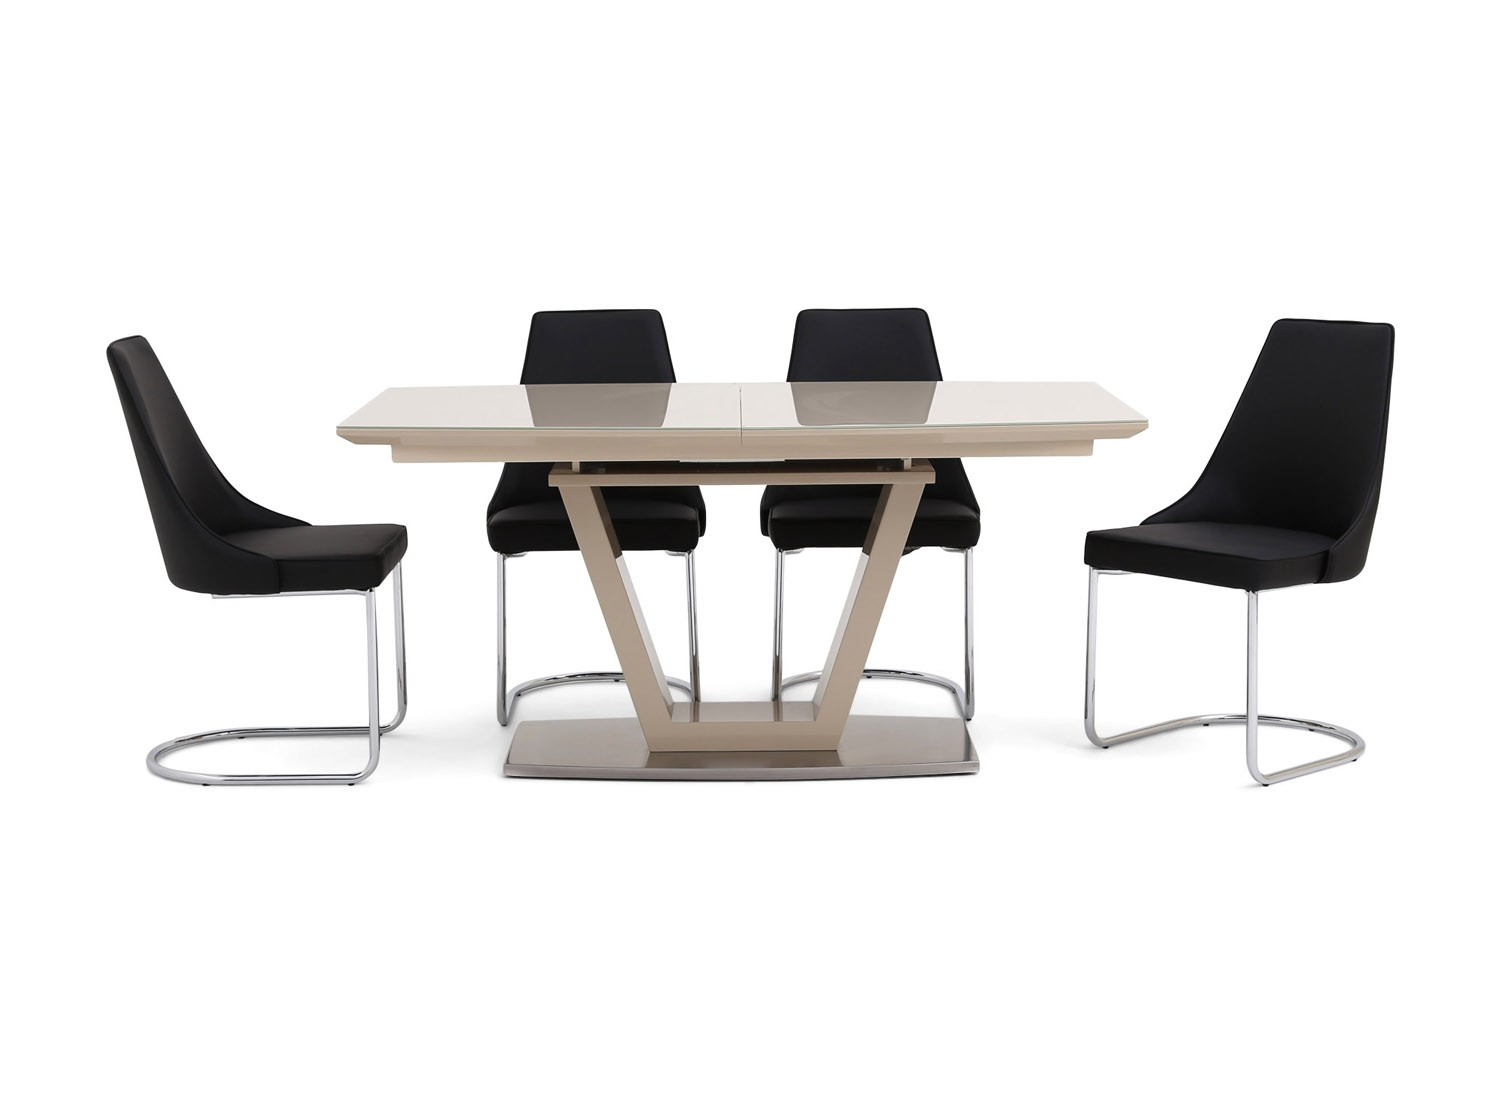 https://www.firstfurniture.co.uk/pub/media/catalog/product/f/a/fairmont_valente_ext_cream_high_gloss_dining_table_6_mya_grey_chairs.jpg